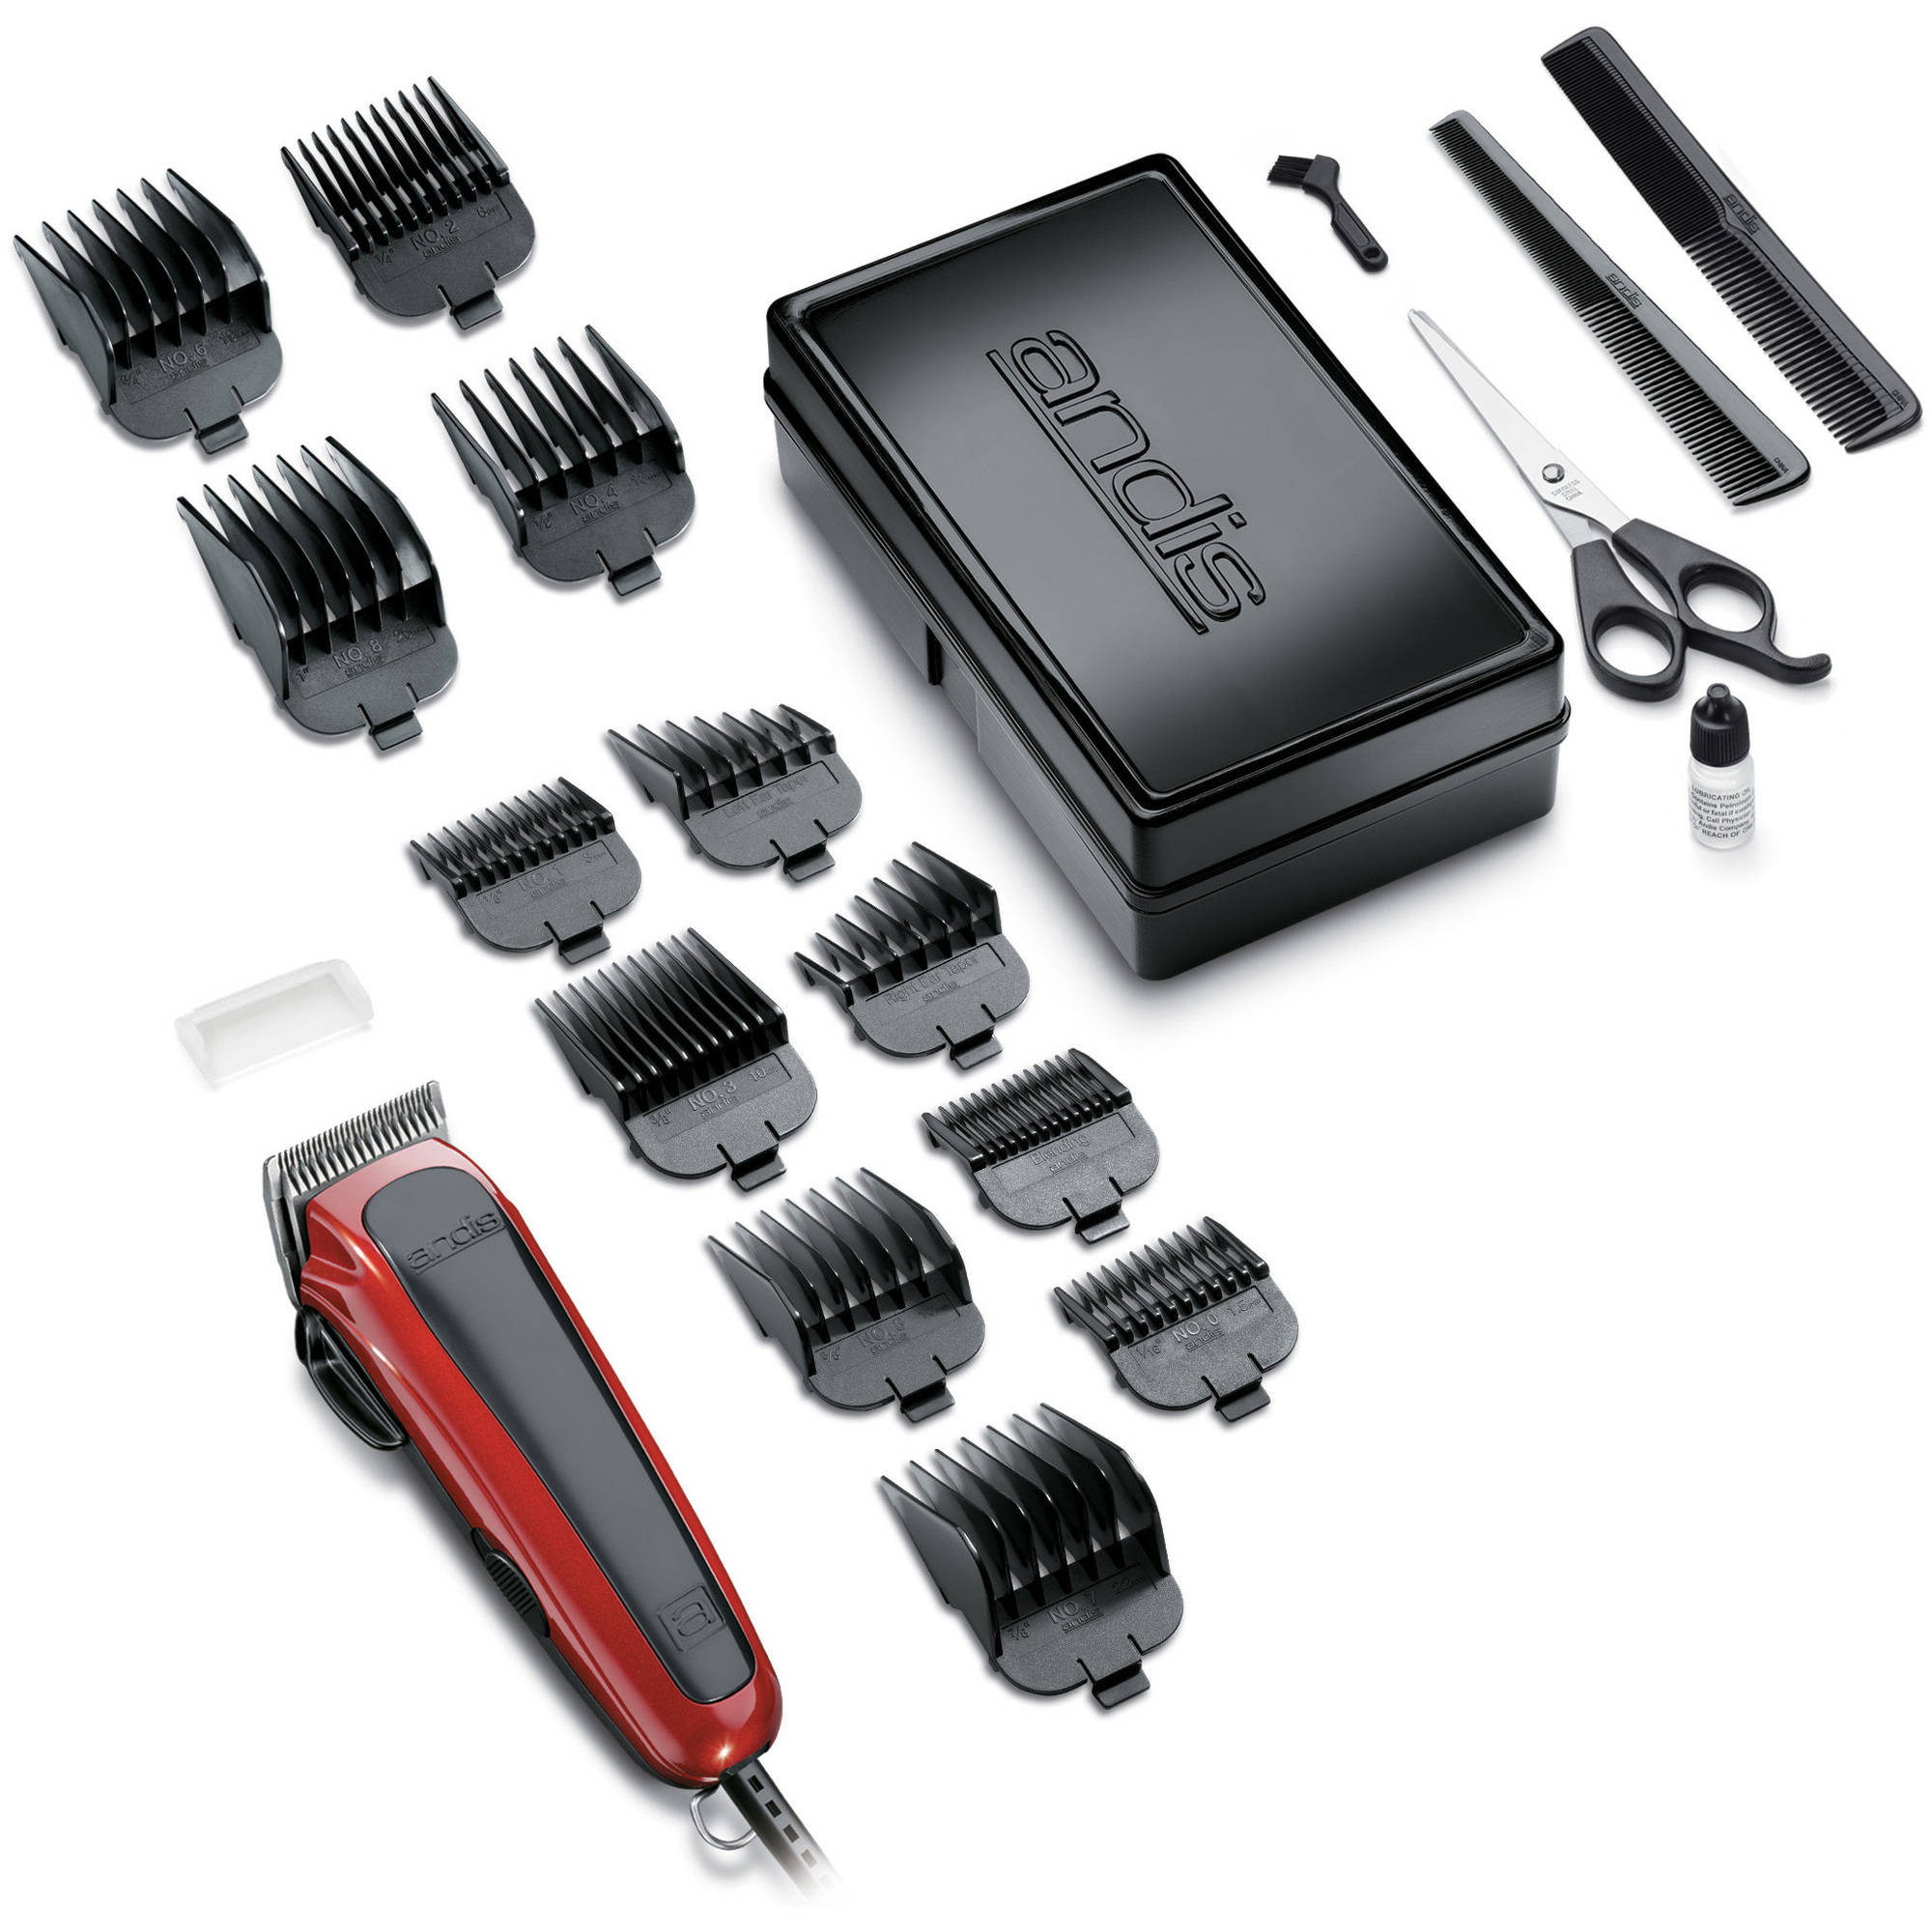 Andis EasyCut Home Haircutting Kit, Black, 20 Pieces